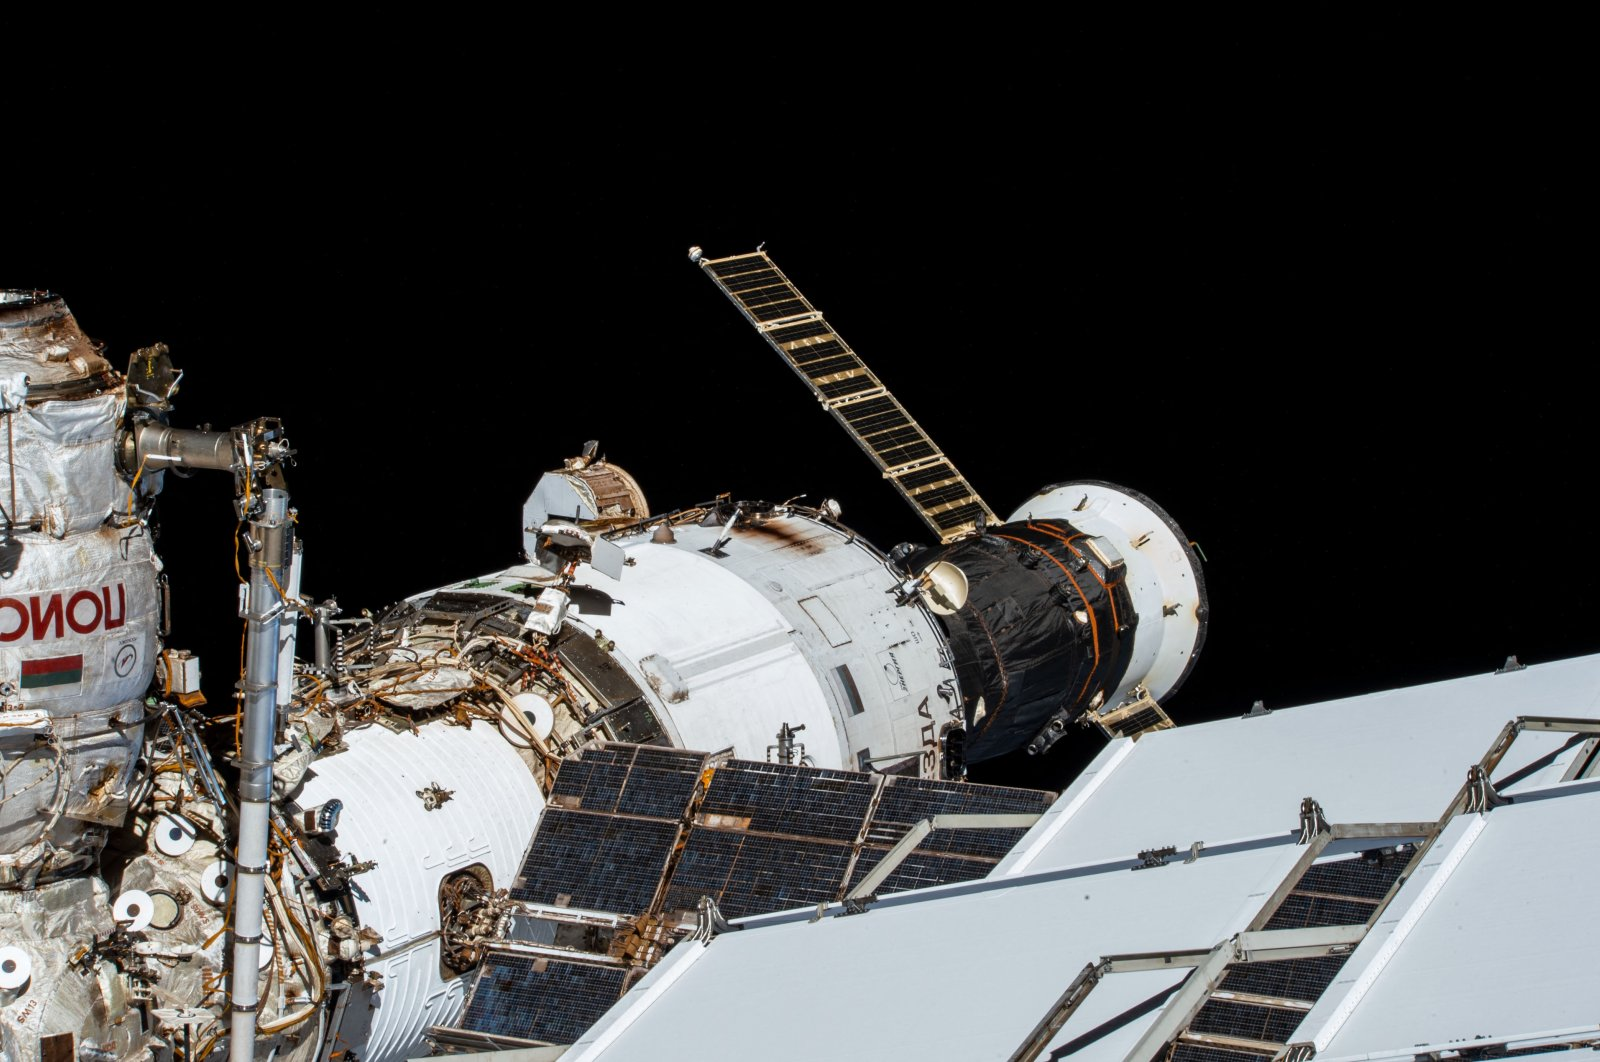 The Russian segment of the International Space Station, Nov. 13, 2020. (Reuters Photo)